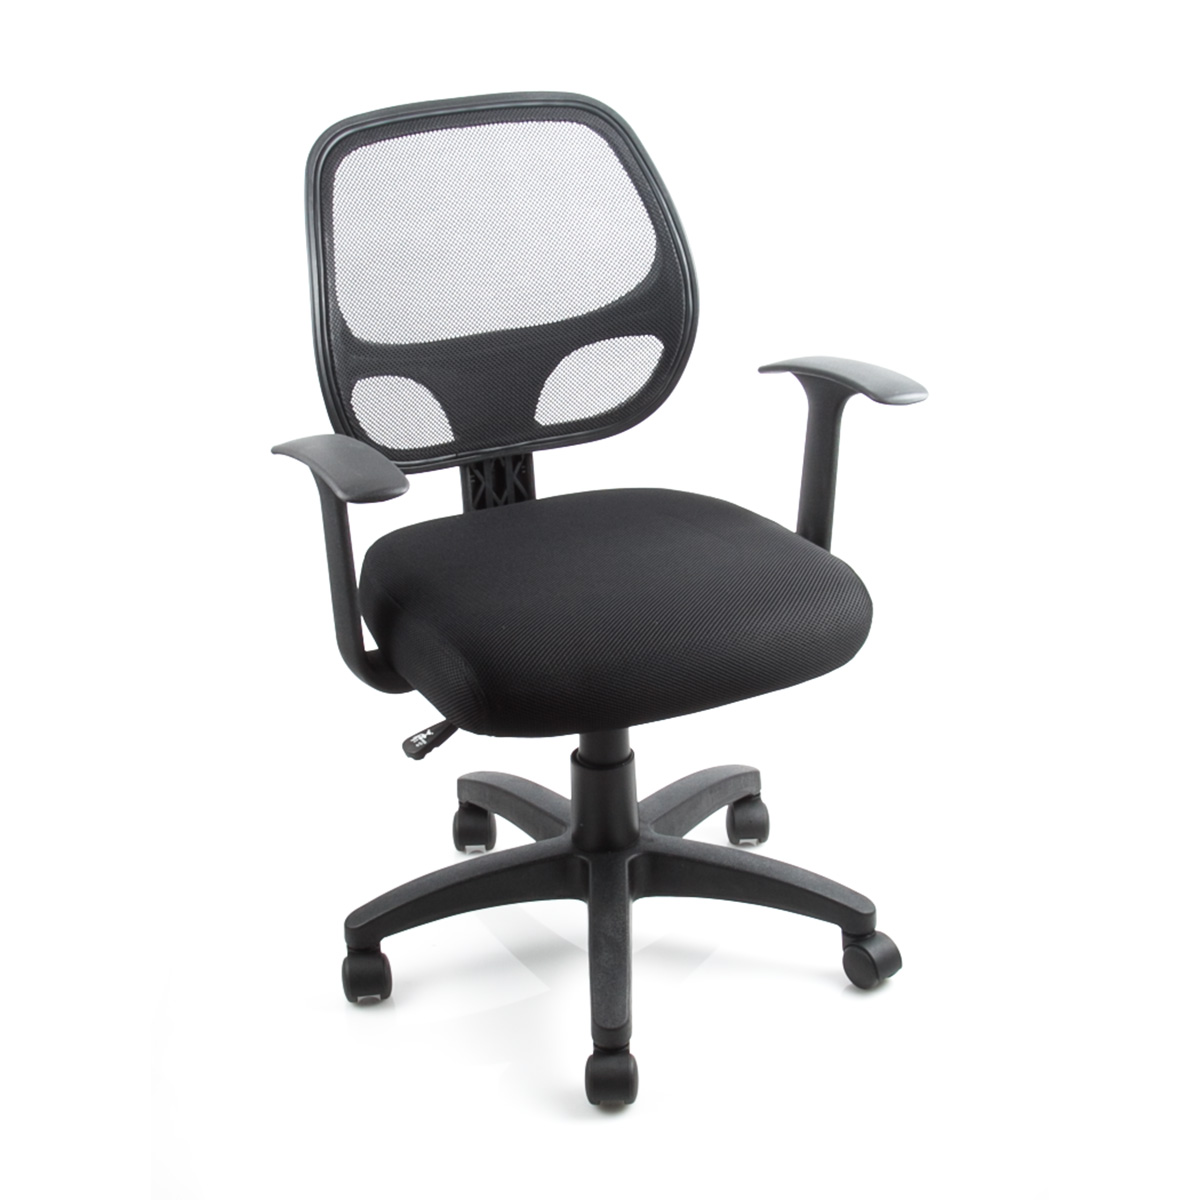 Mid Back Black Office Chair Padded Fabric Mesh Home Computer Desk Ergonomic